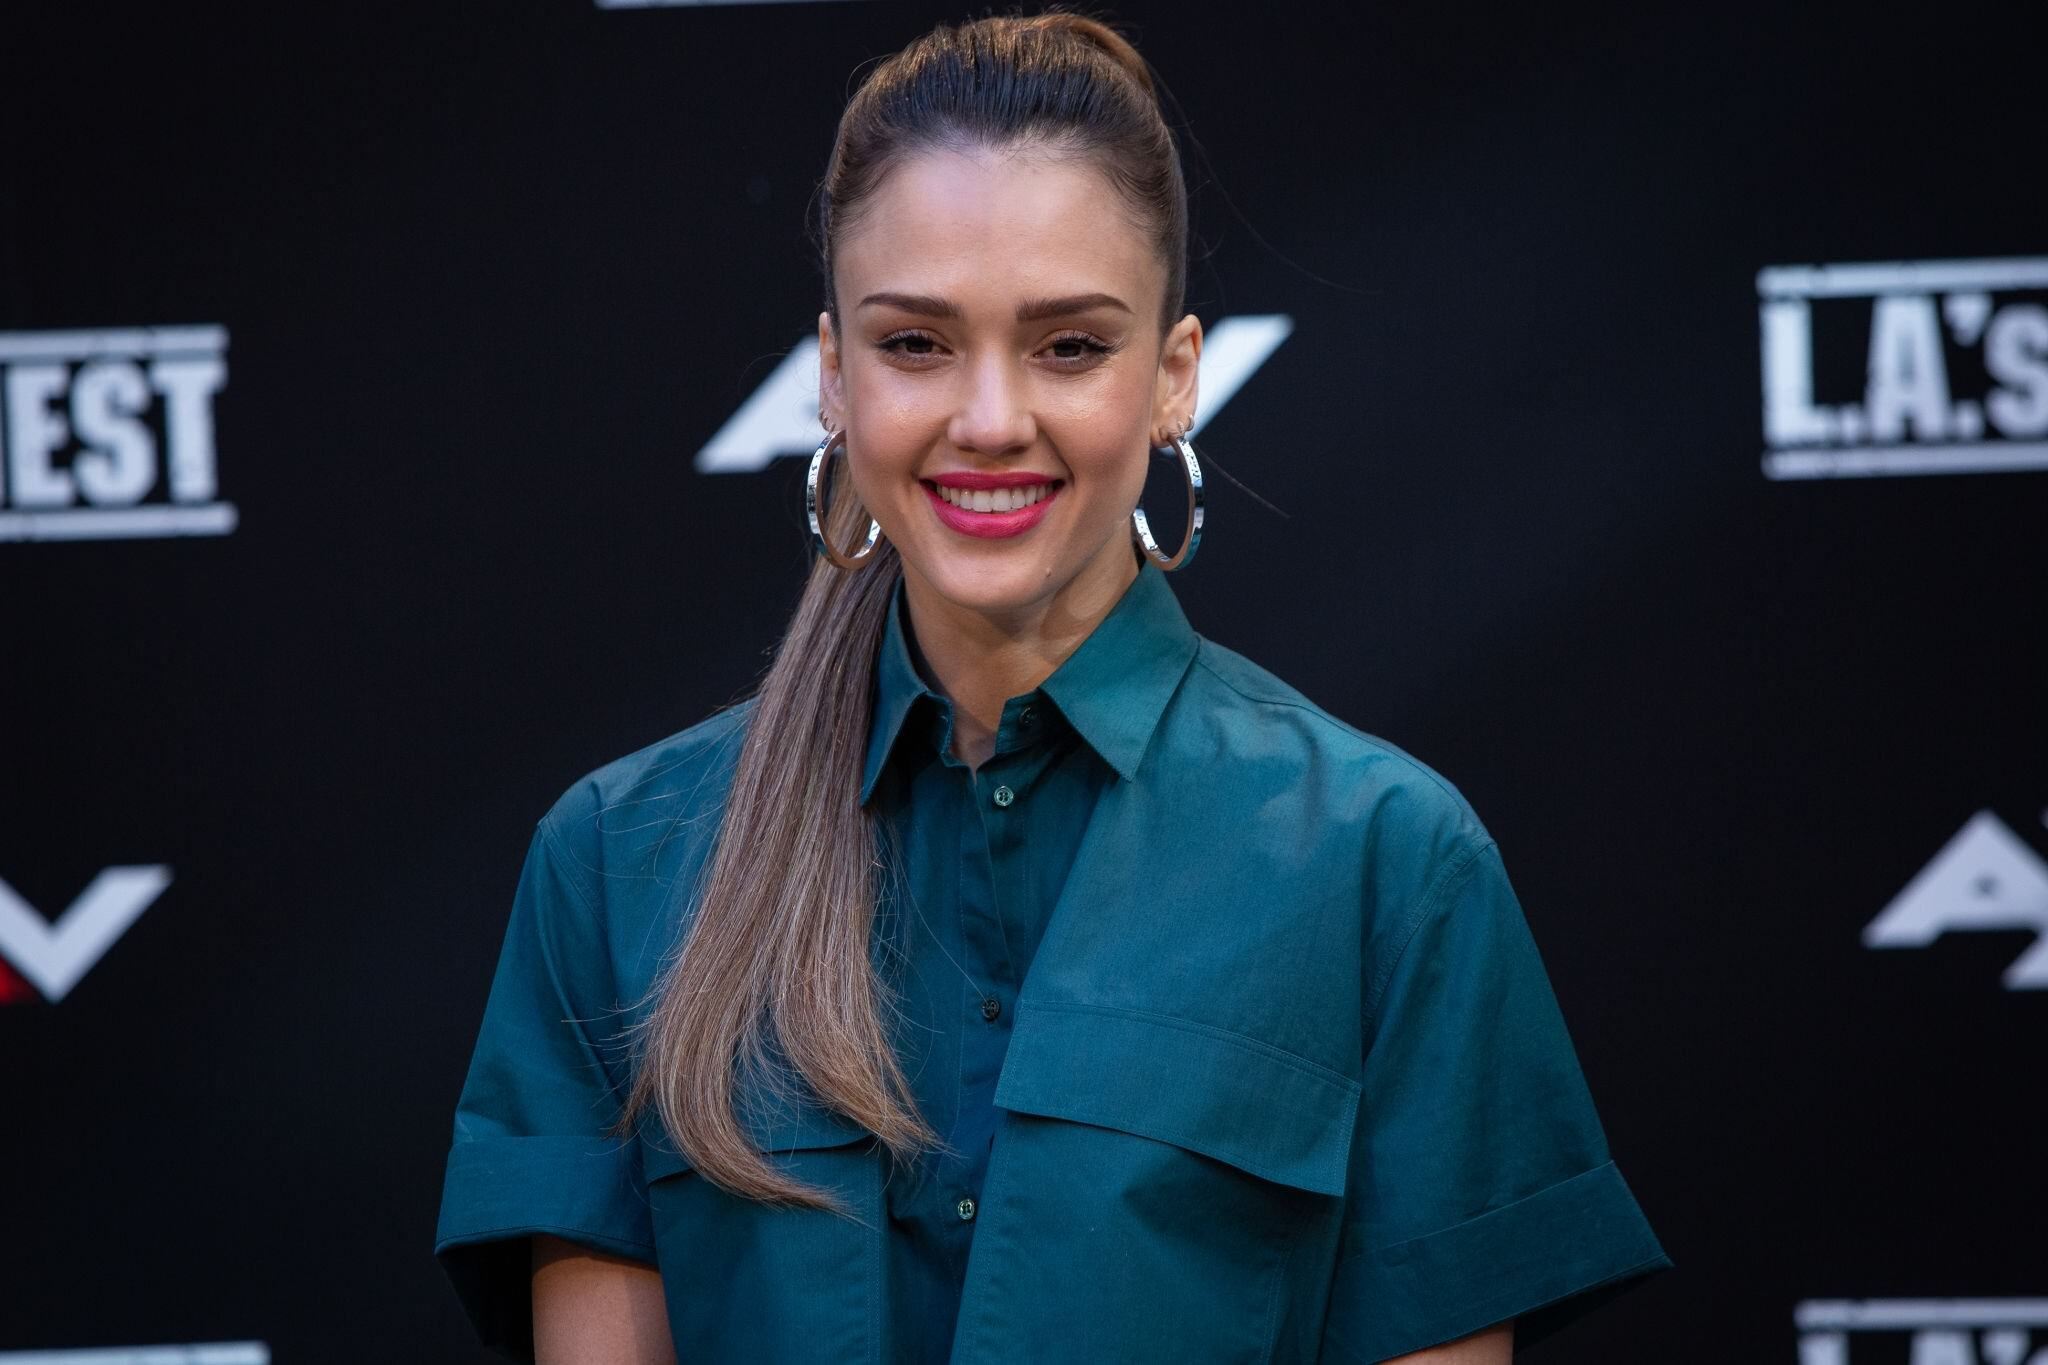 More than 30 Photos of Jessica Alba At LA's Finest Photocall Shoot In Madrid